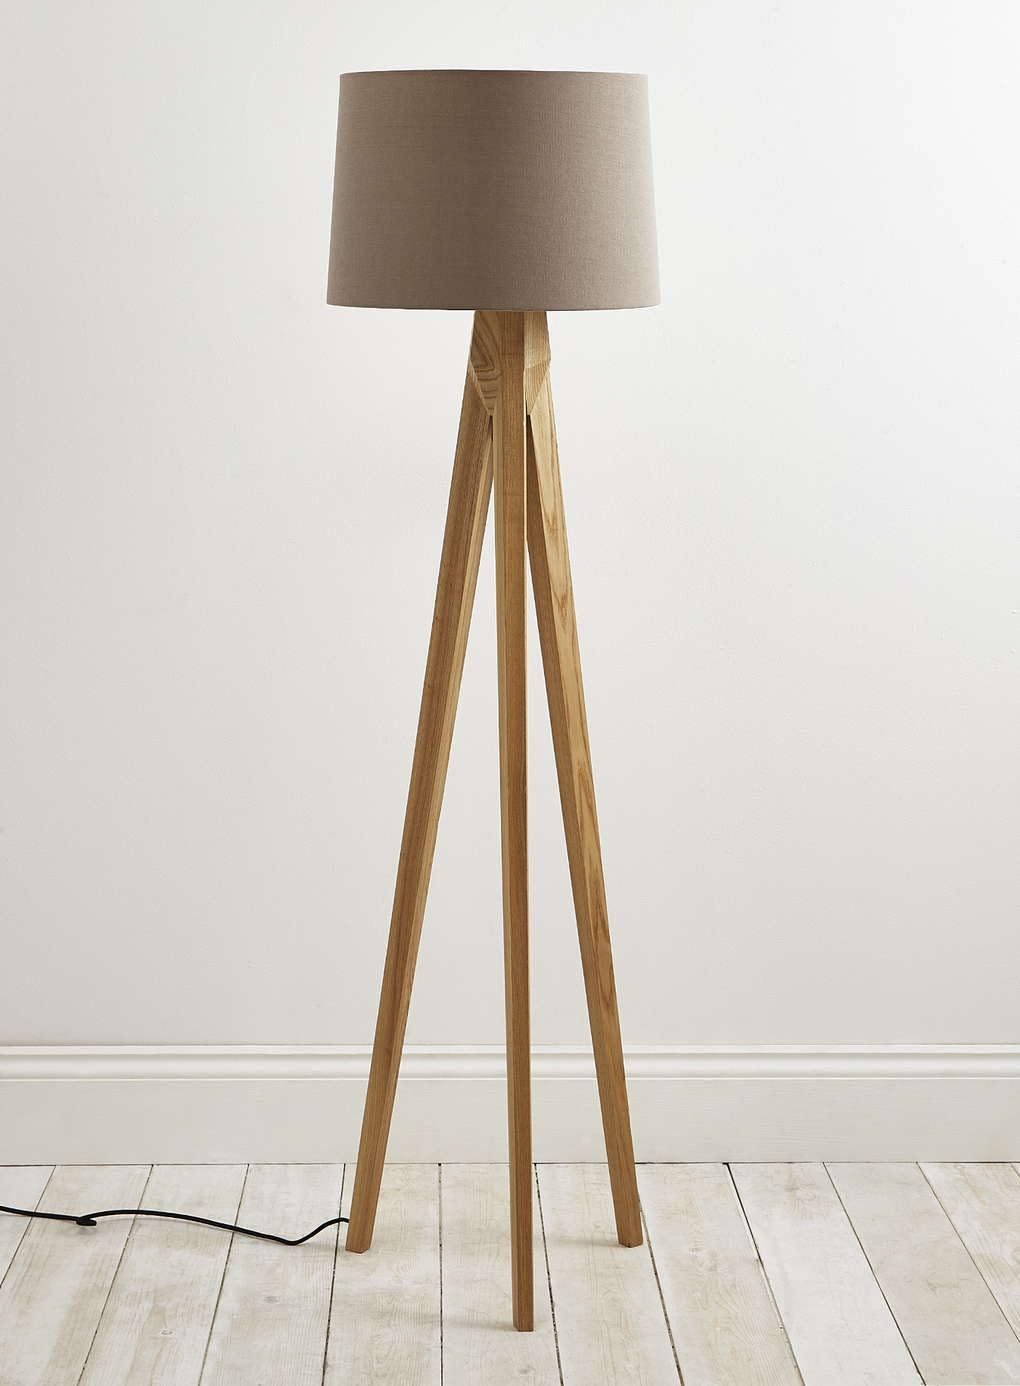 Delightful Tripod Floor Lamp Wooden Legs